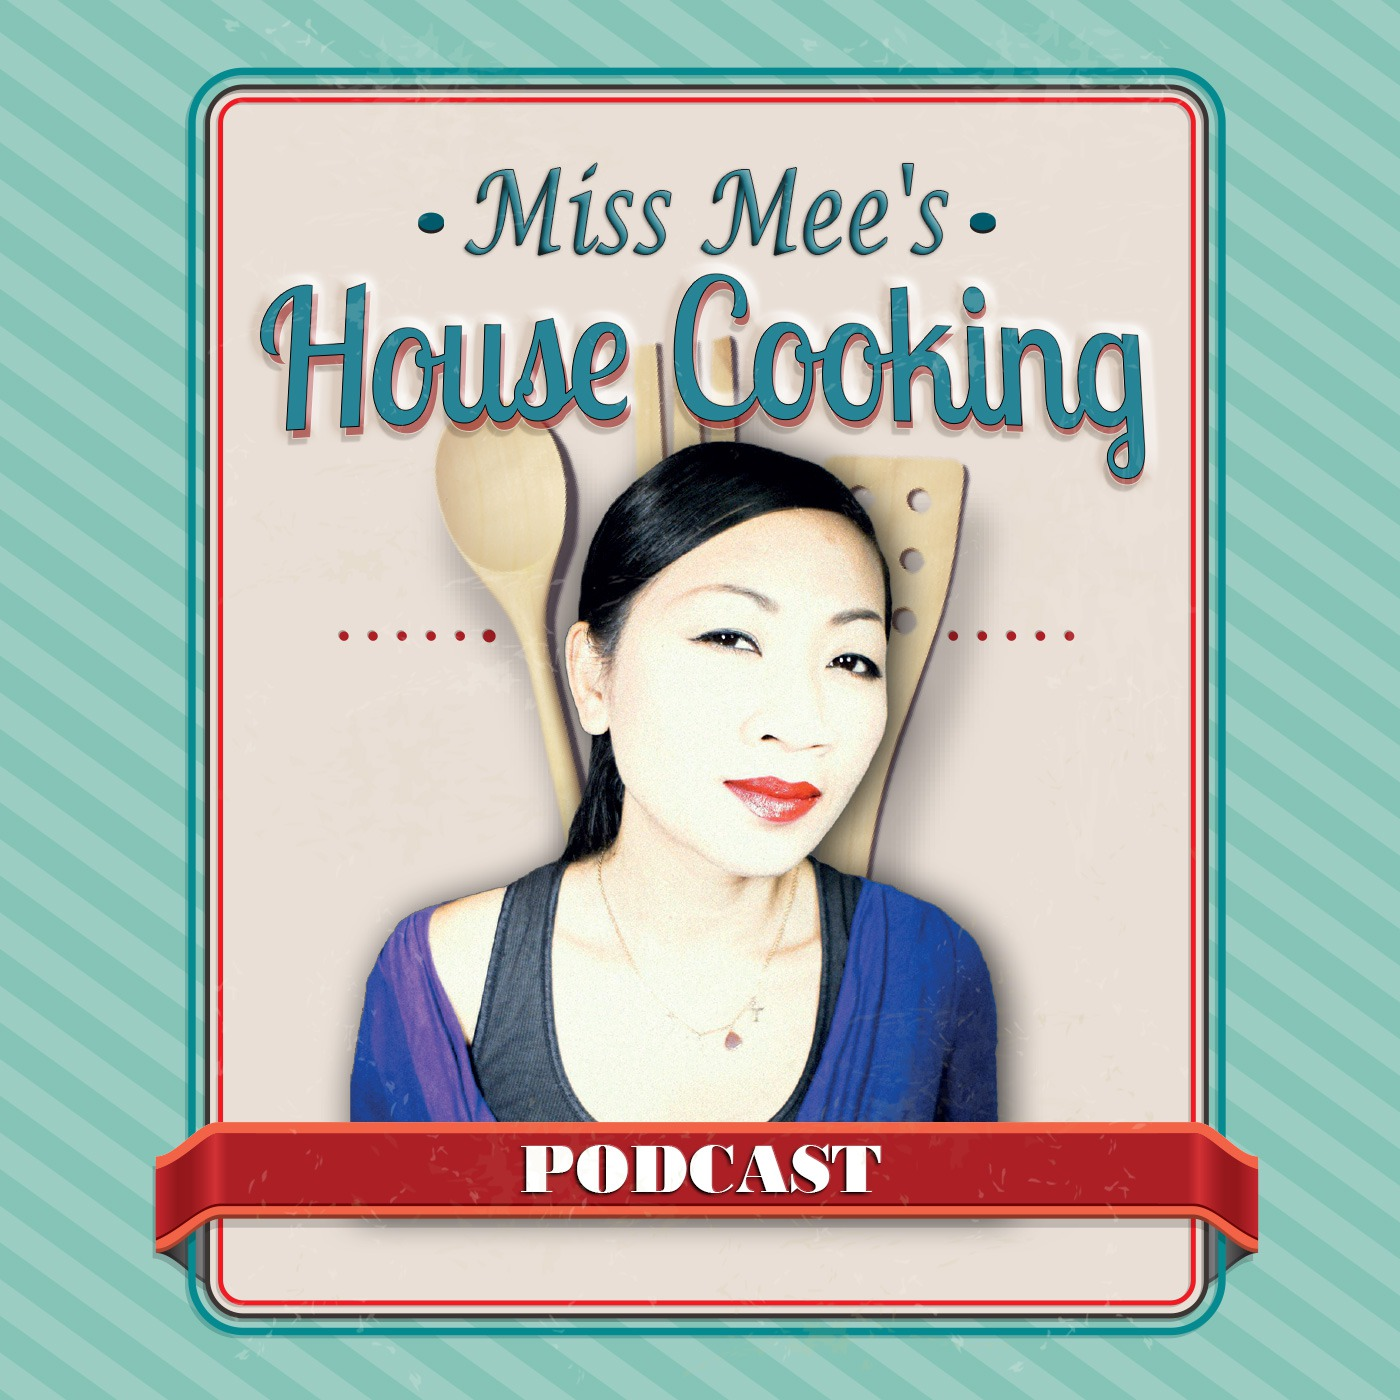 Miss Mee's House Cooking Podcast